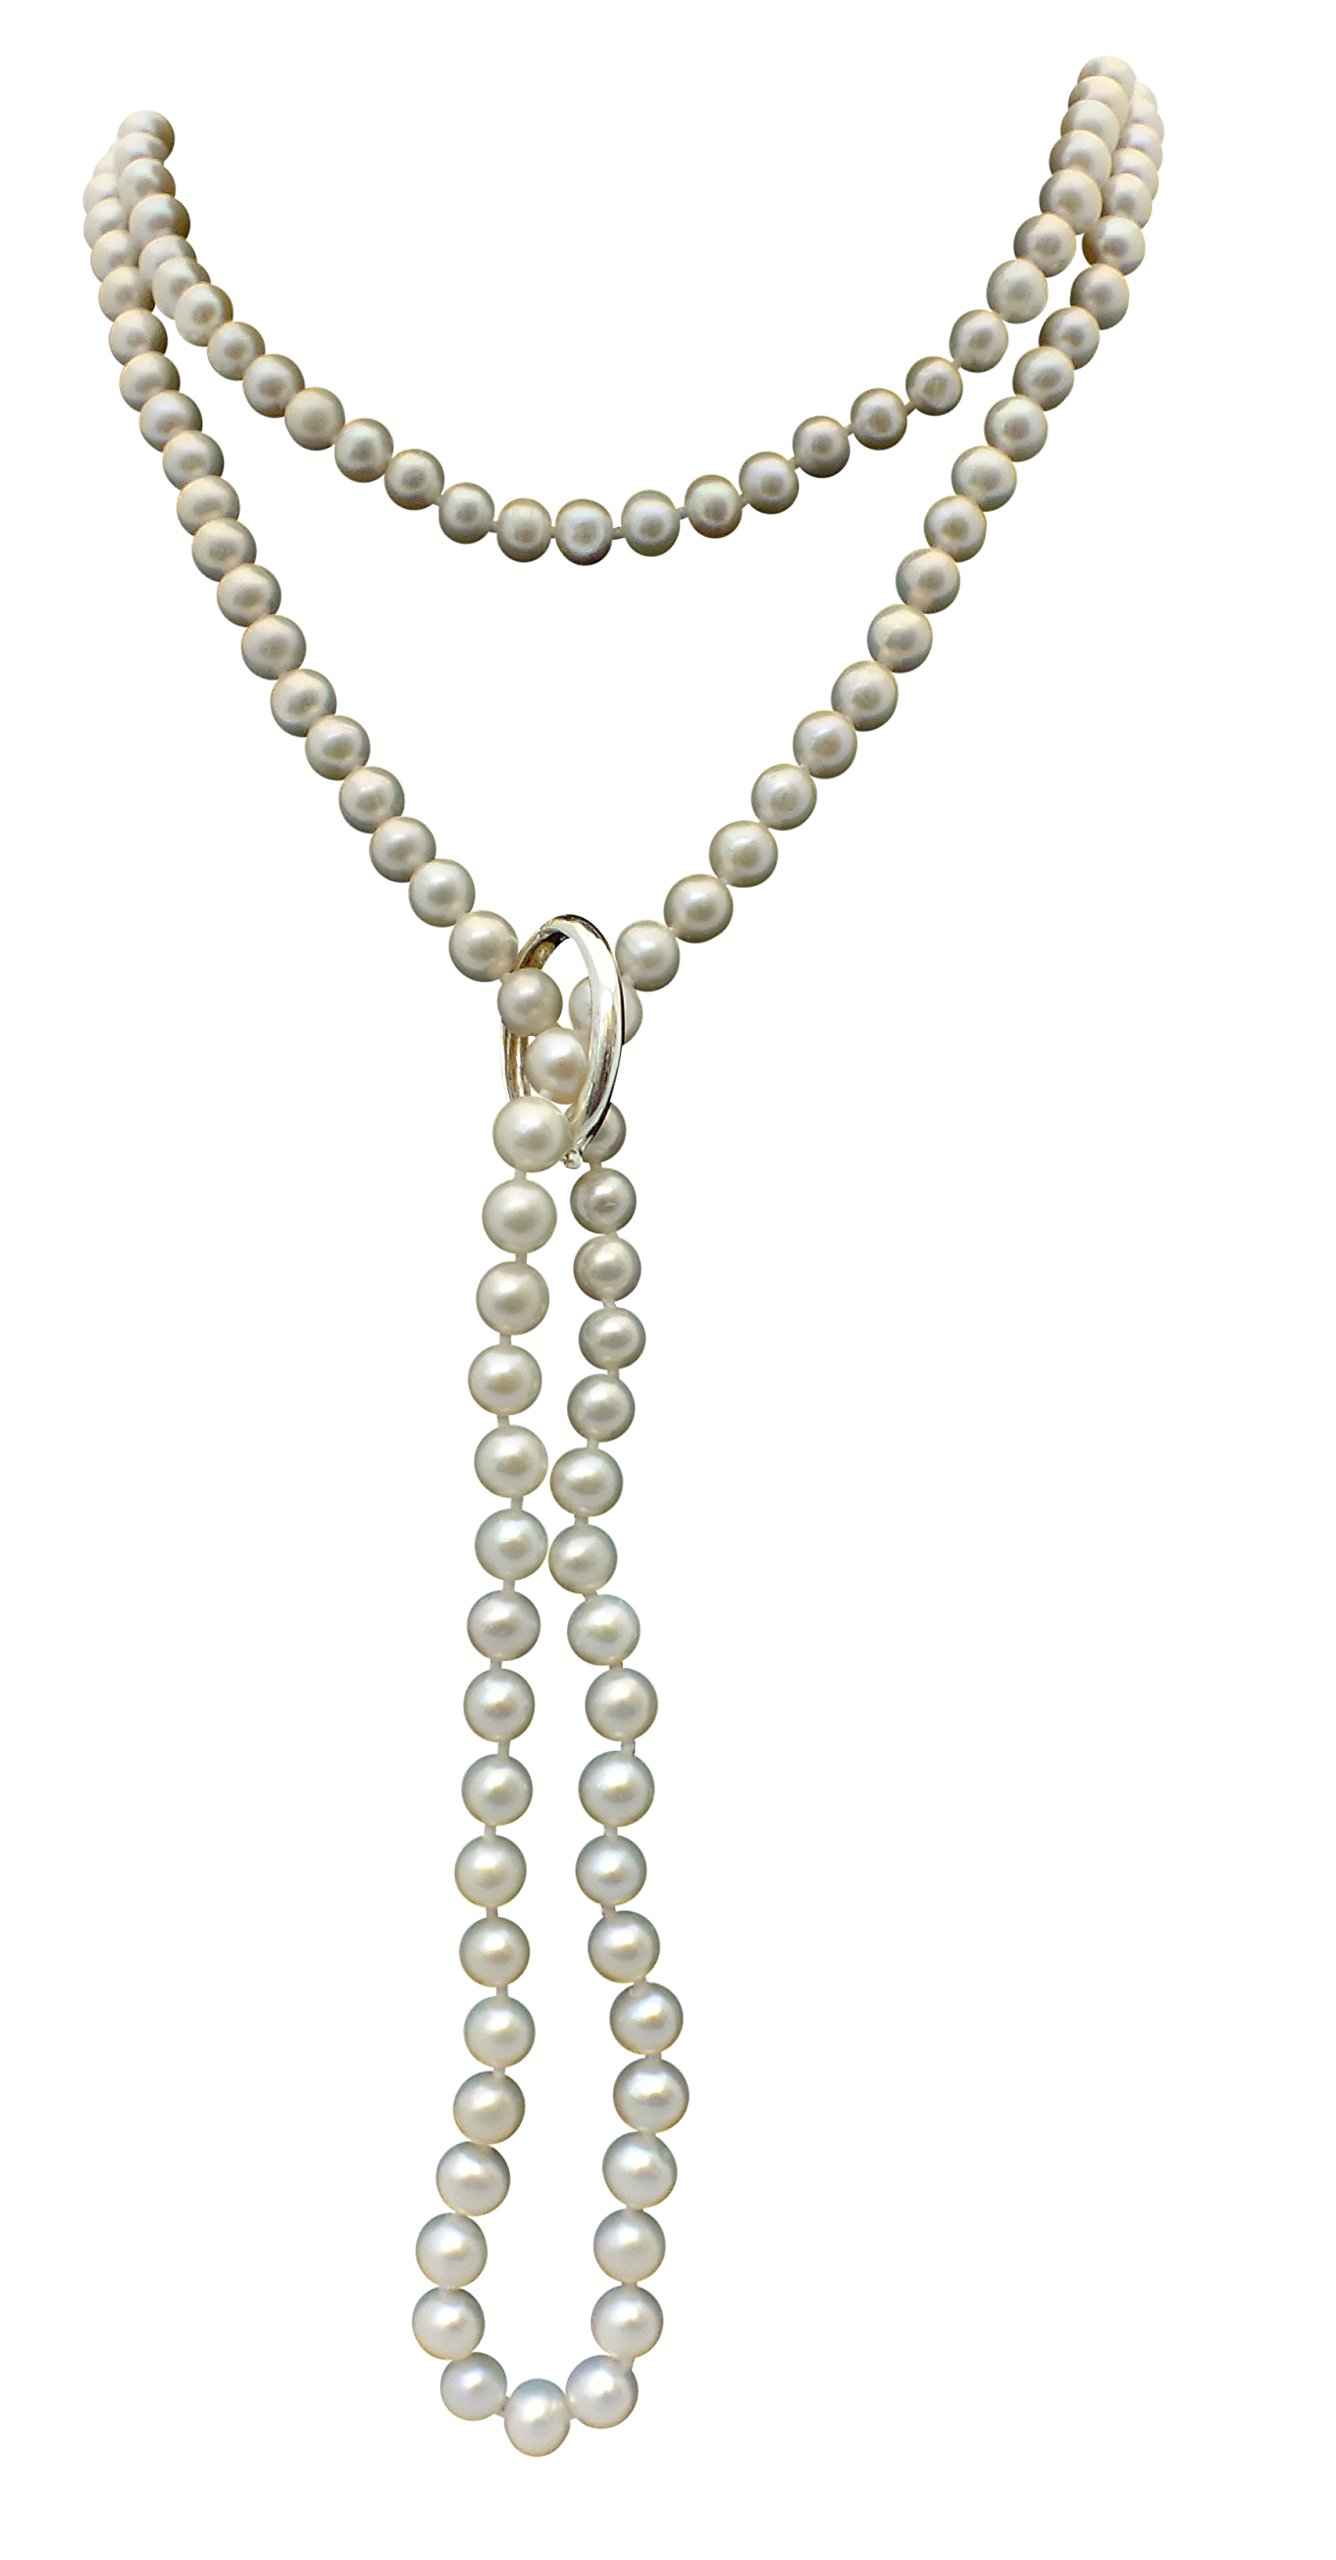 White Shanghai 6-7mm Cultured Pearl 135cm Long Necklace With A Sterling Silver Shortener